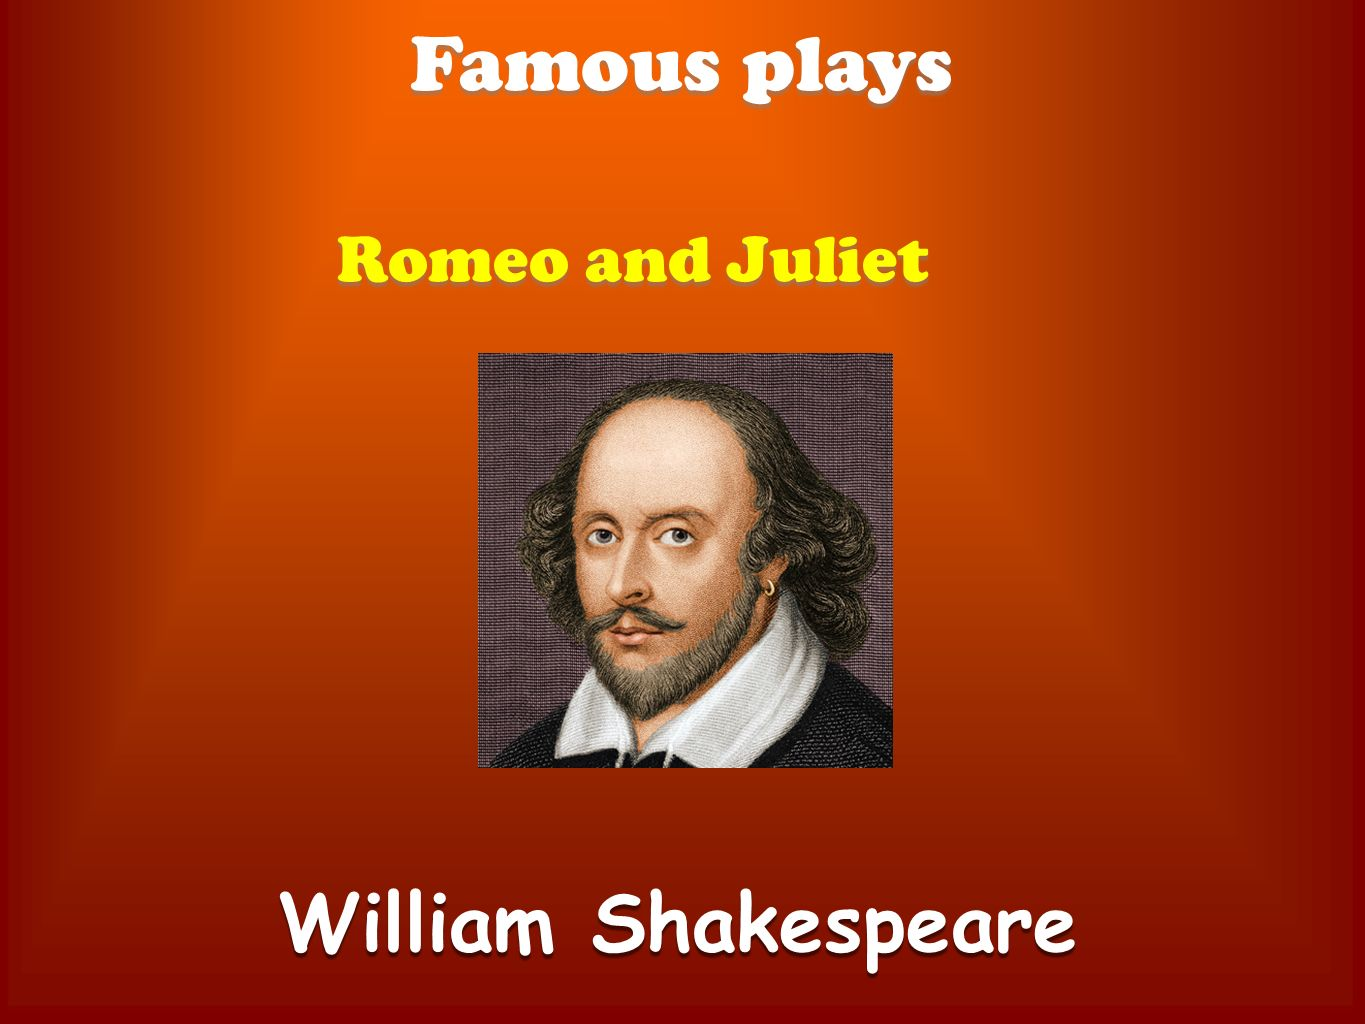 a review of william shakespeares play romeo and juliet and the presentation of love in it Romeo and juliet by william shakespeare 893 words | 4 pages are in the play romeo and juliet, by william shakespeare, the playwright used the nurse, lord capulet, and friar lawrence to show how taming the wills of the teens and forcing their wishes upon them could turn the play romeo and juliet into a tragic love story.